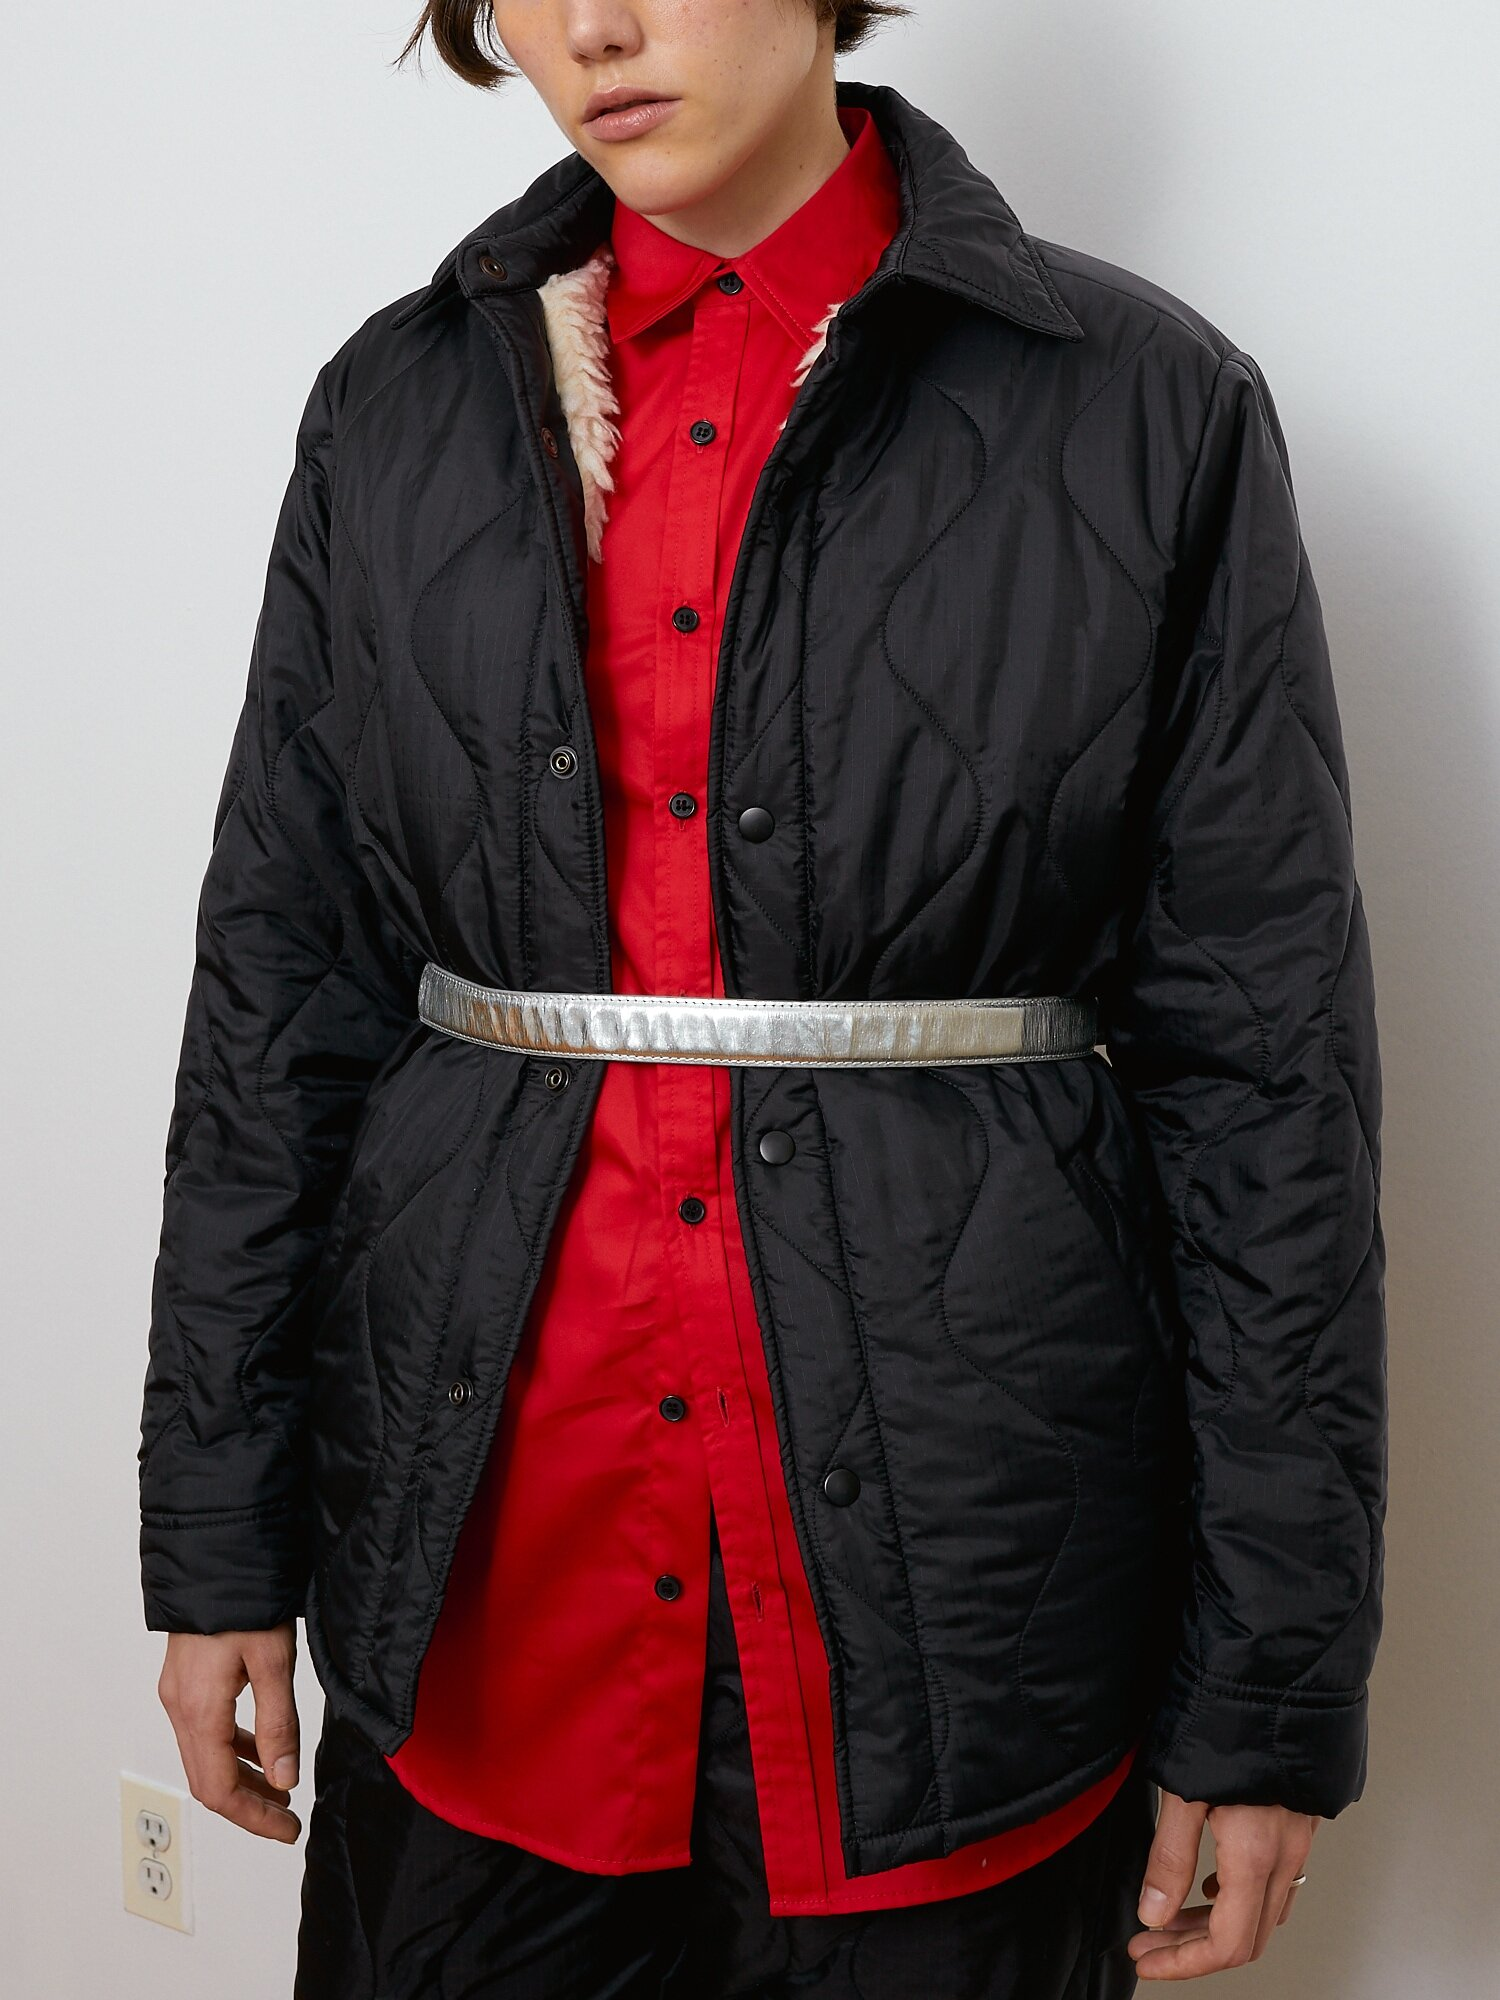 Shop Black Jacket With Sherpa Lining